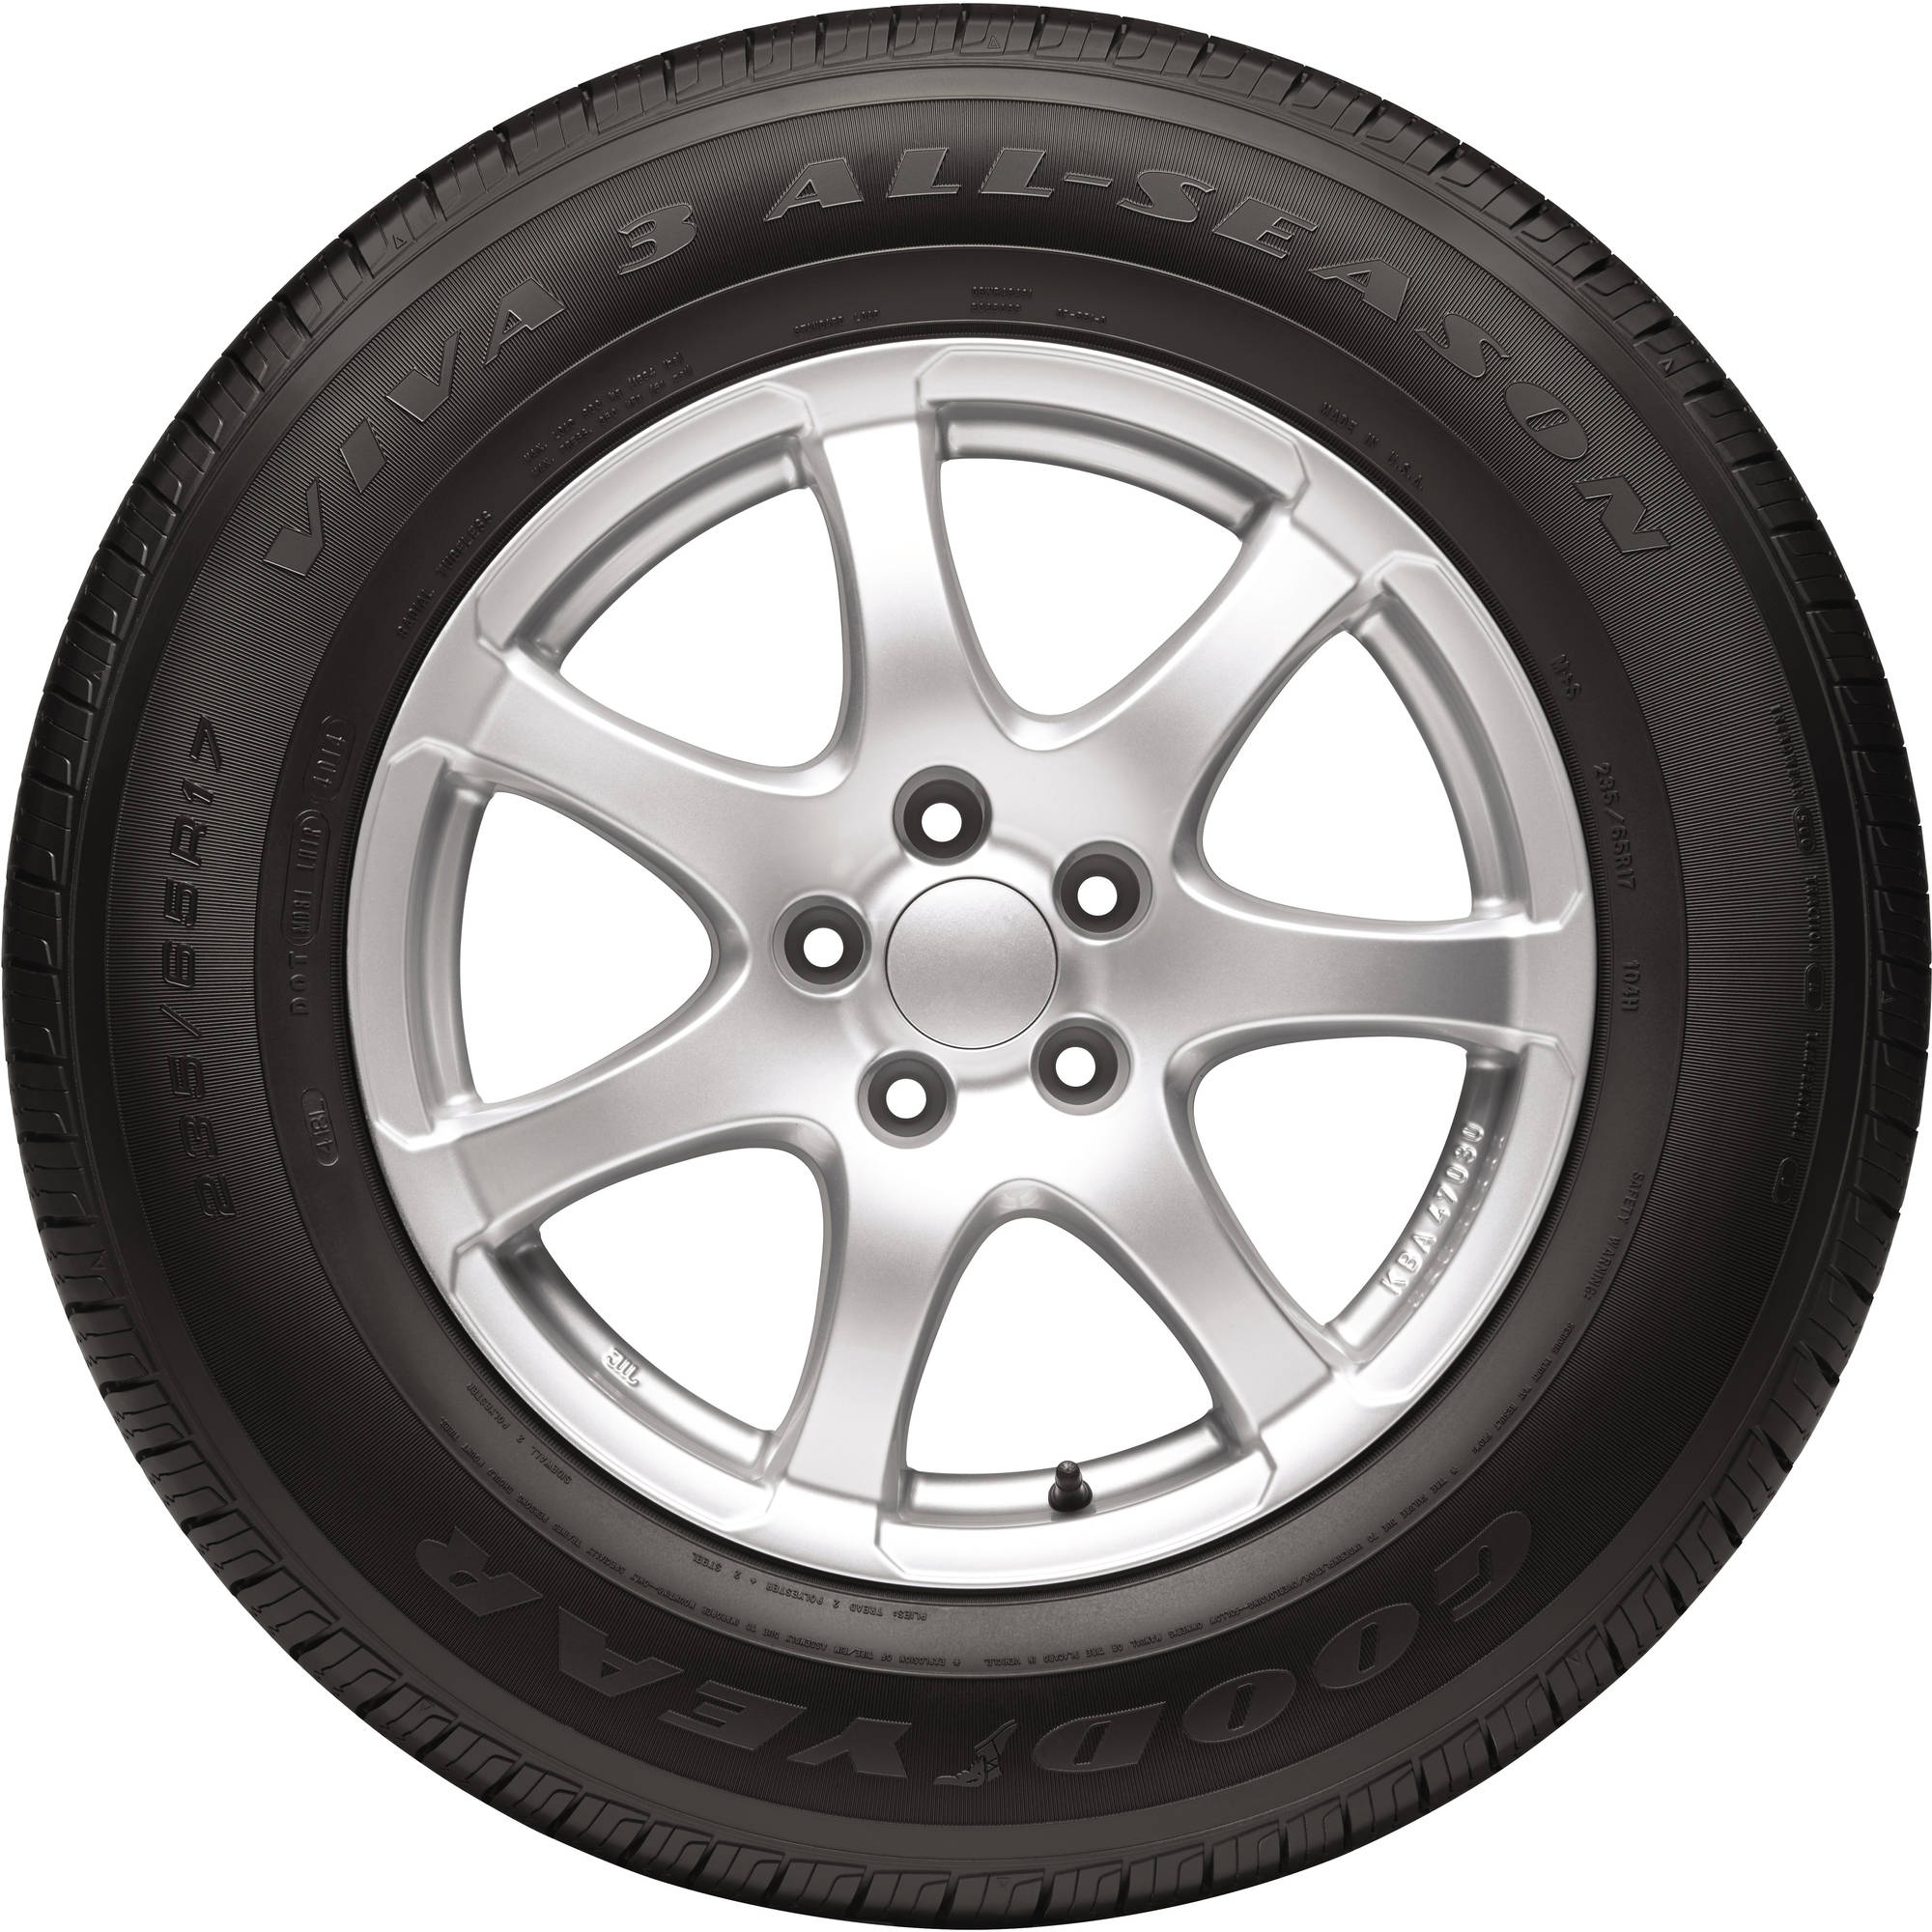 Goodyear Viva 3 All-Season Tire 215/60R16 95T 697662124962 ...